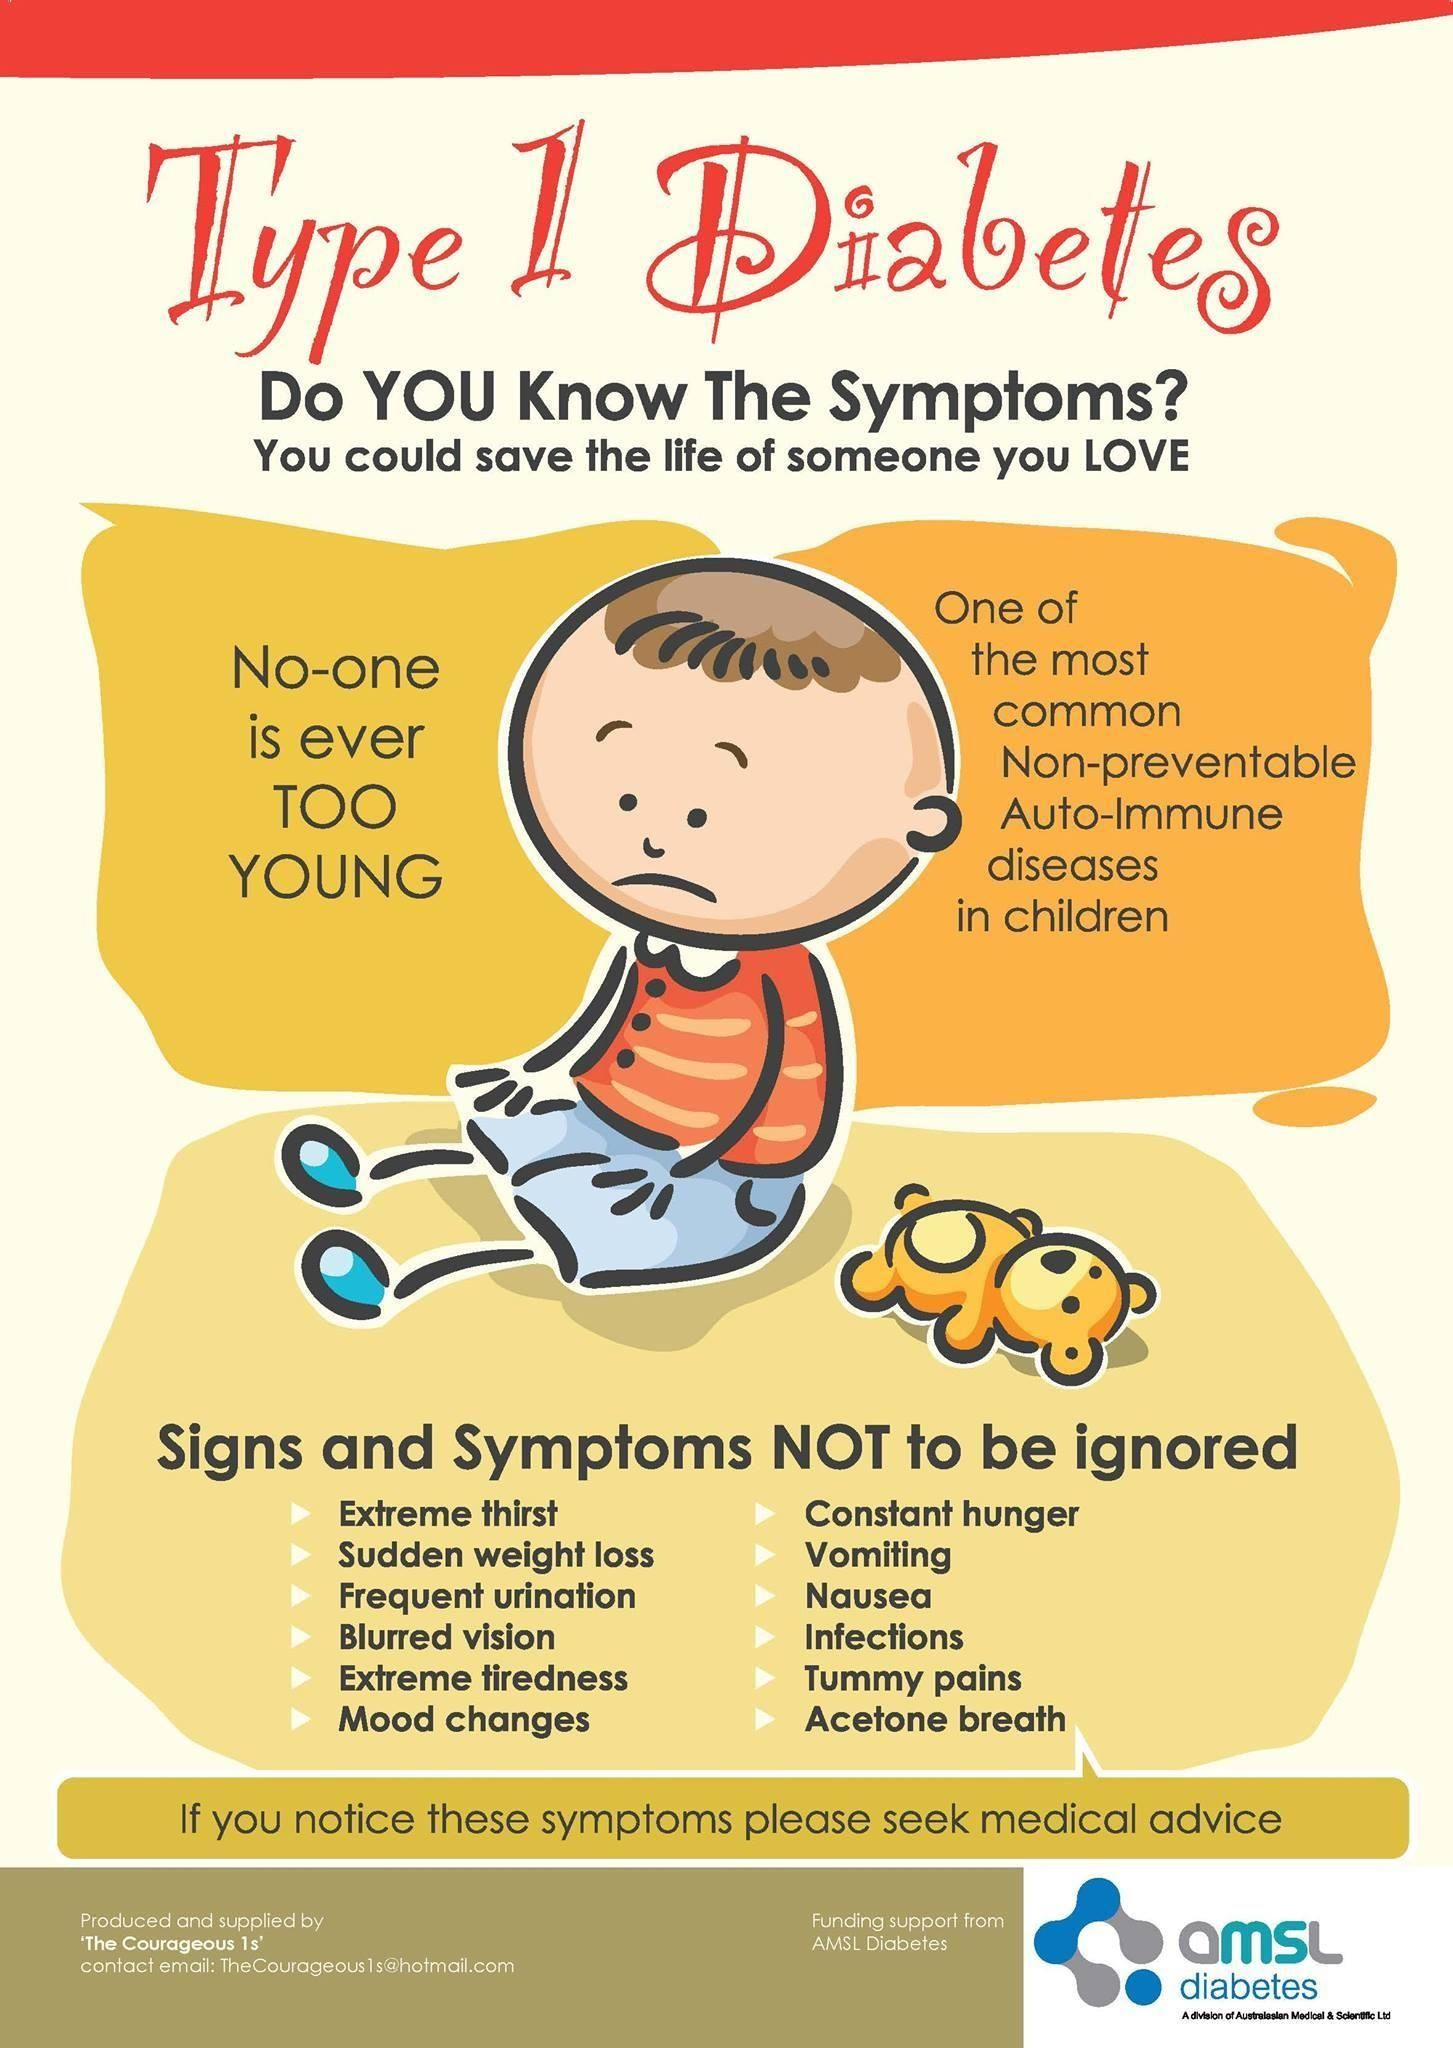 KNOW THE SYMPTOMS Please share… Awareness is the most important thing